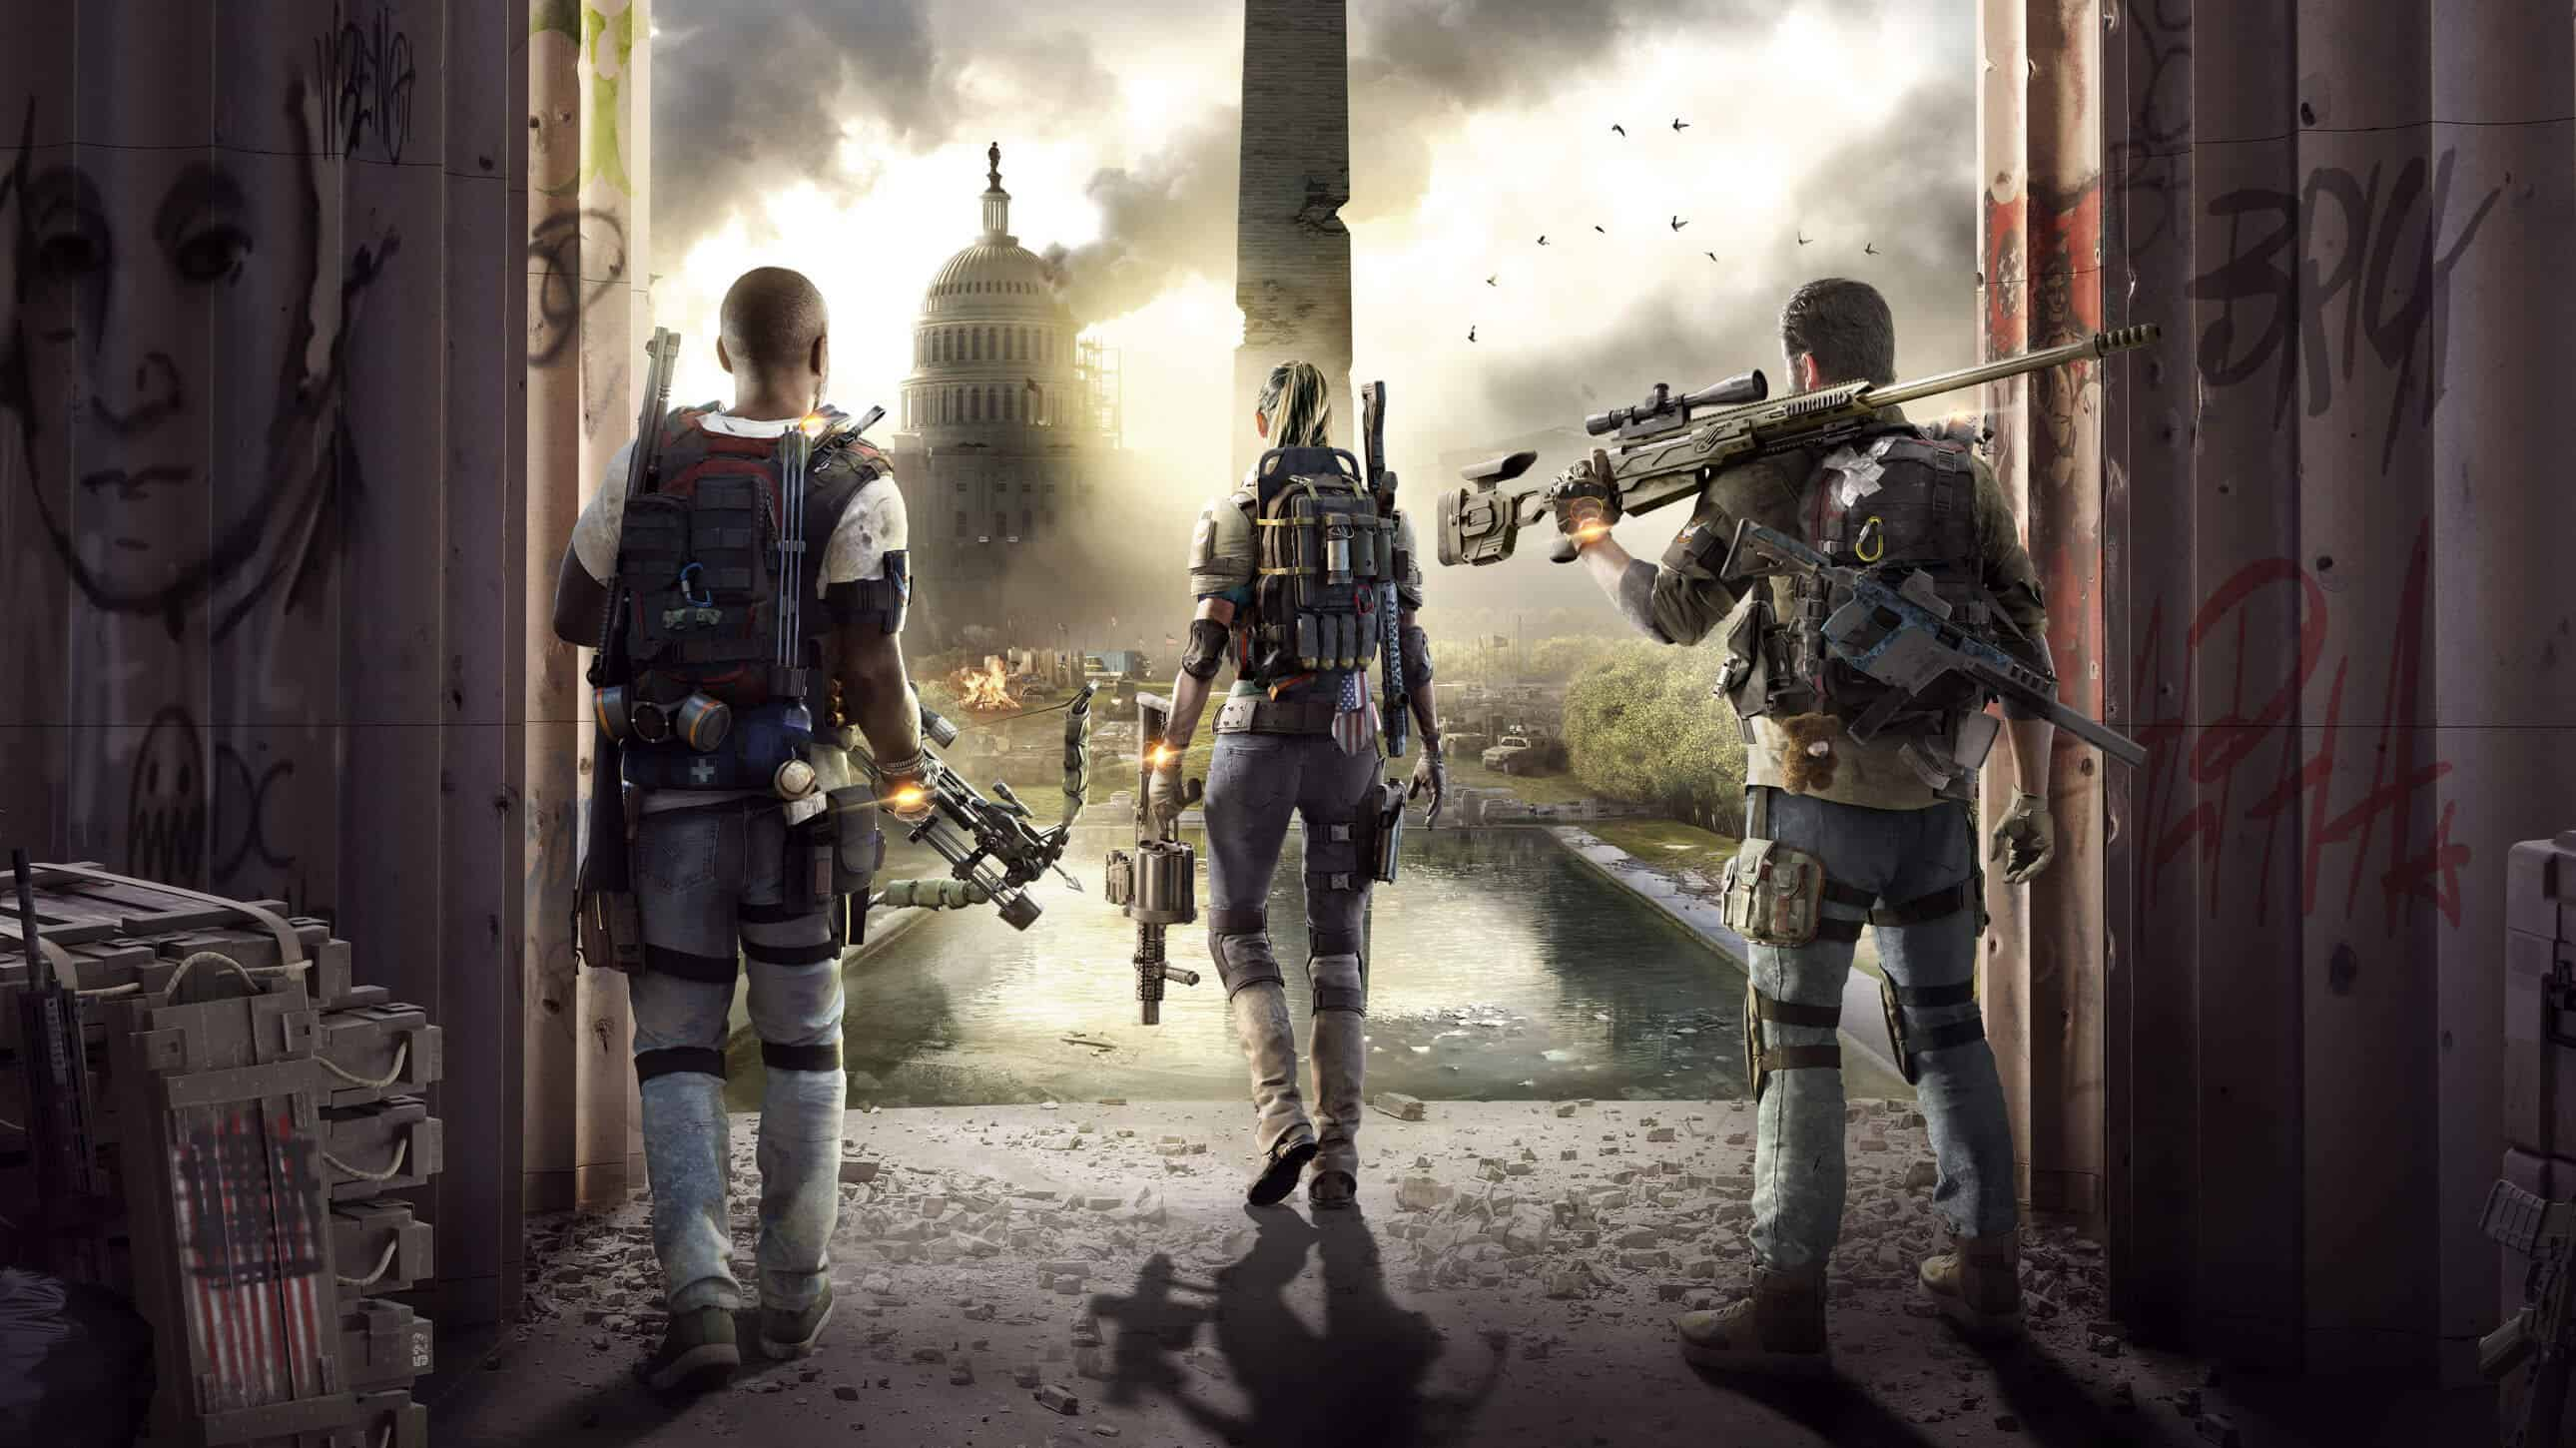 [Epic Games Store] Tom Clancy's Ghost Recon Wildlands ($14.99 /70% off), Watch_Dogs® 2 ($14.99 /75% off), Far Cry Primal ($14.99 /70% off). $4.99 each at checkout until 13/06. : GameDeals 1